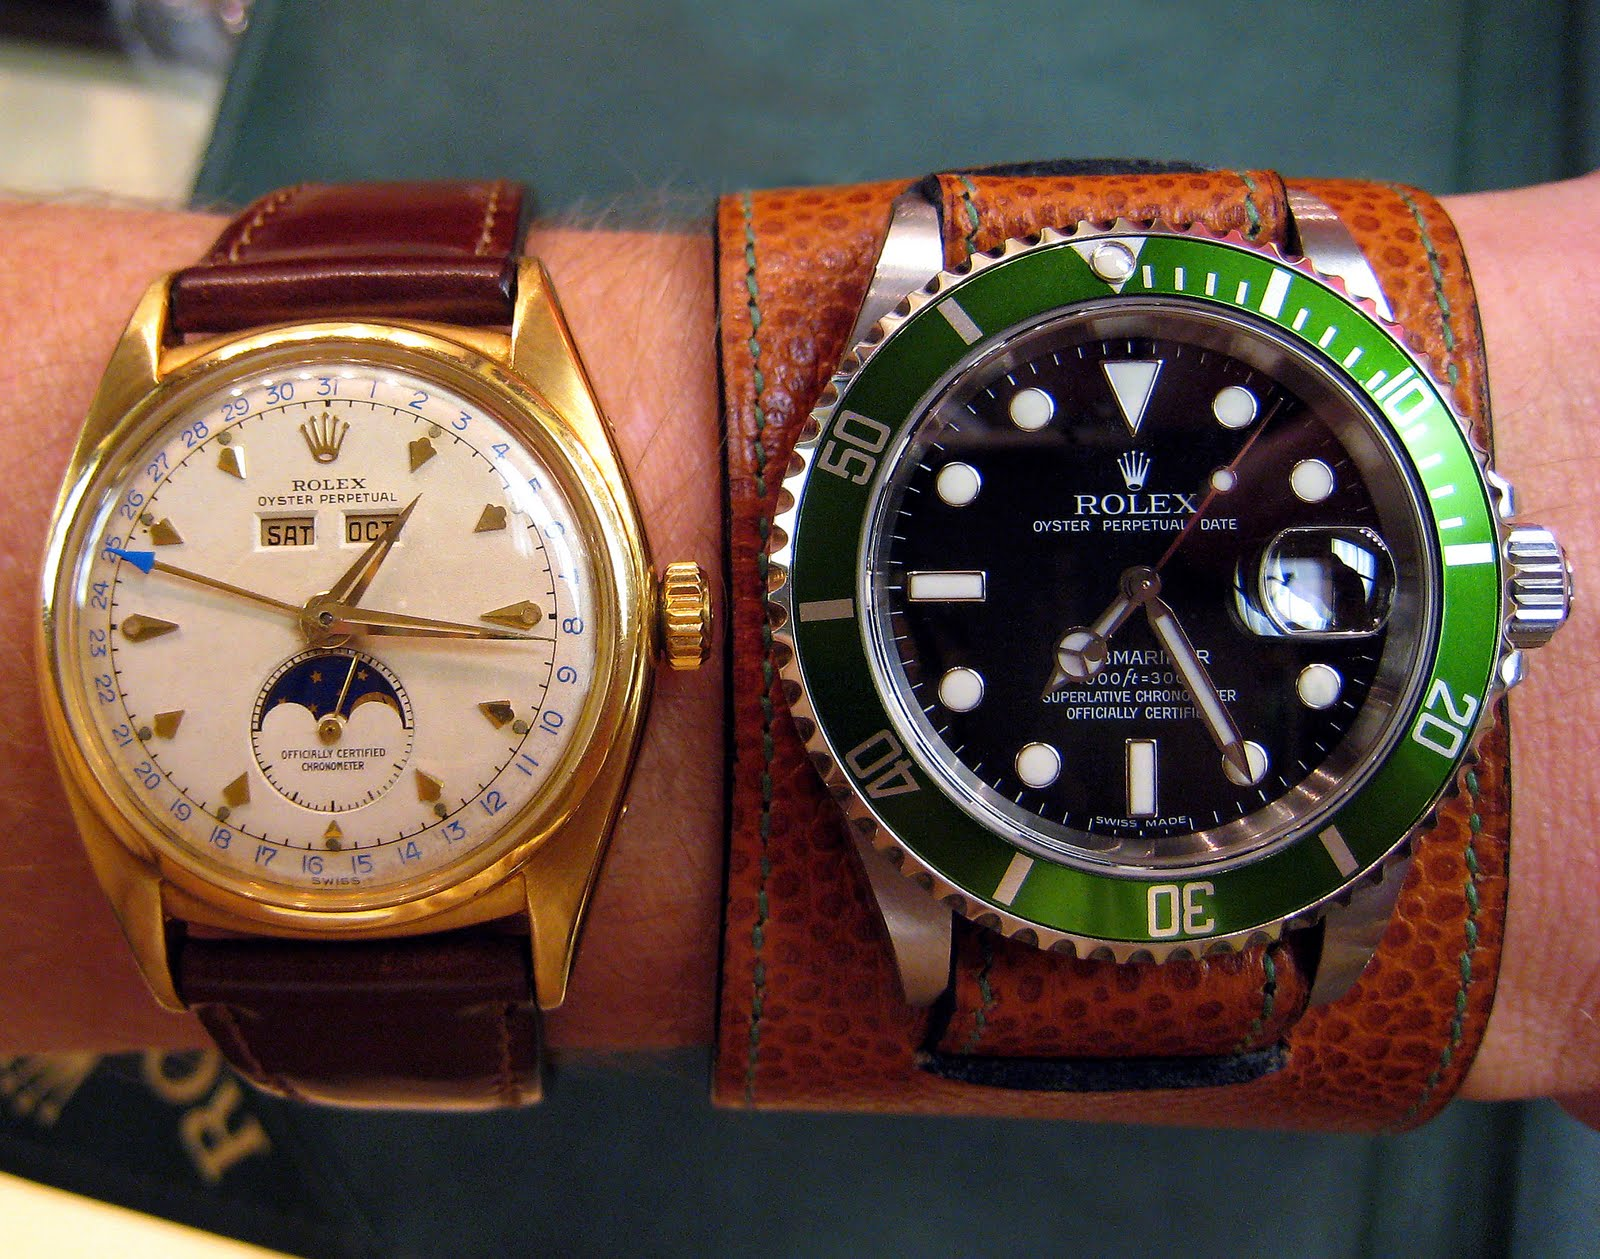 Welcome To Home Of Jakes Rolex World Magazine Moofeat Lunnar Tan Monday July 11 2011